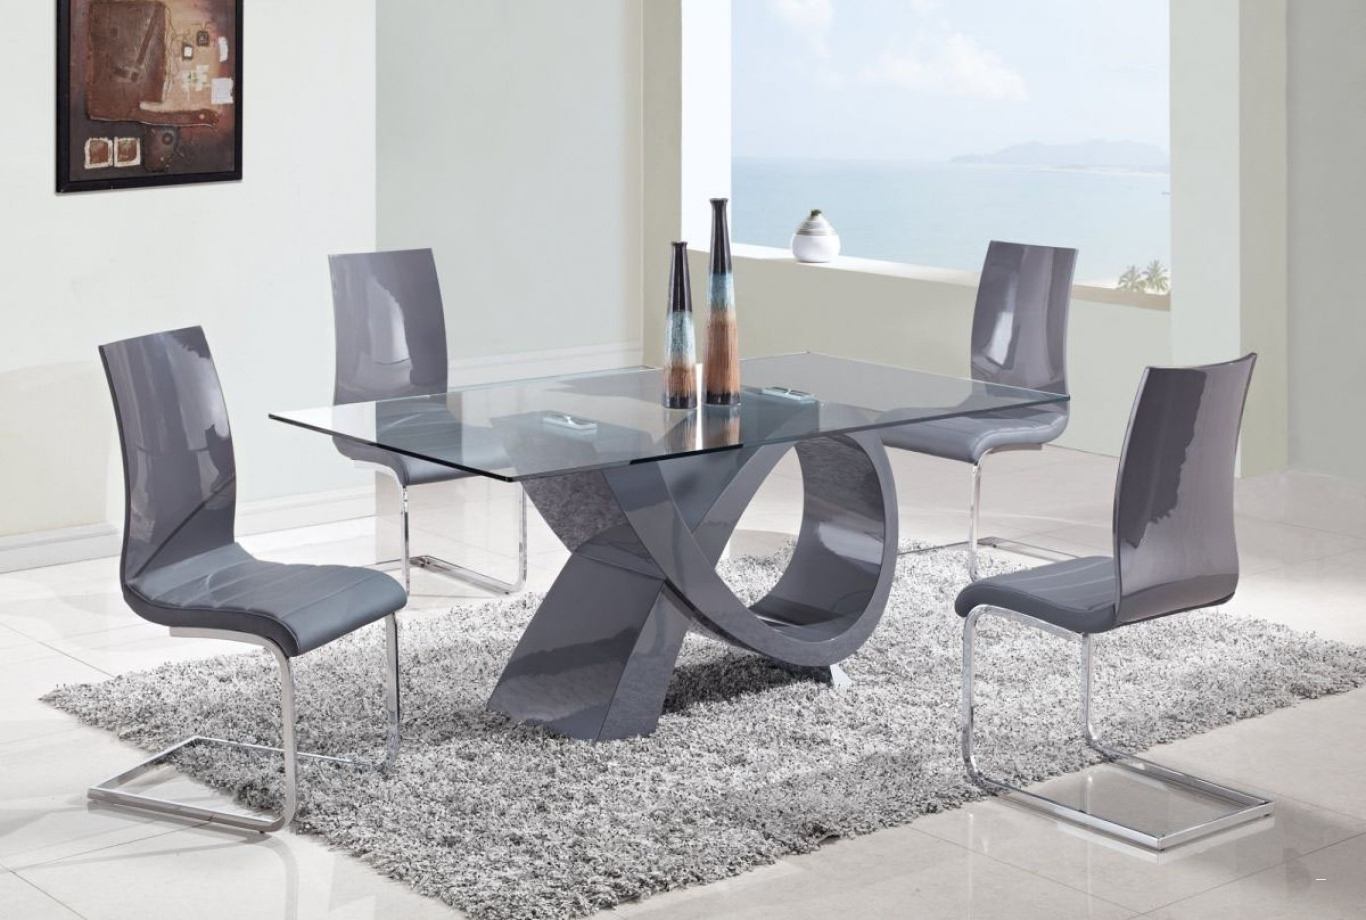 Favorite 6 Seater Glass Dining Table Sets Regarding Caesar Modern Glass Dining Table Set With 6 Seater (View 21 of 25)